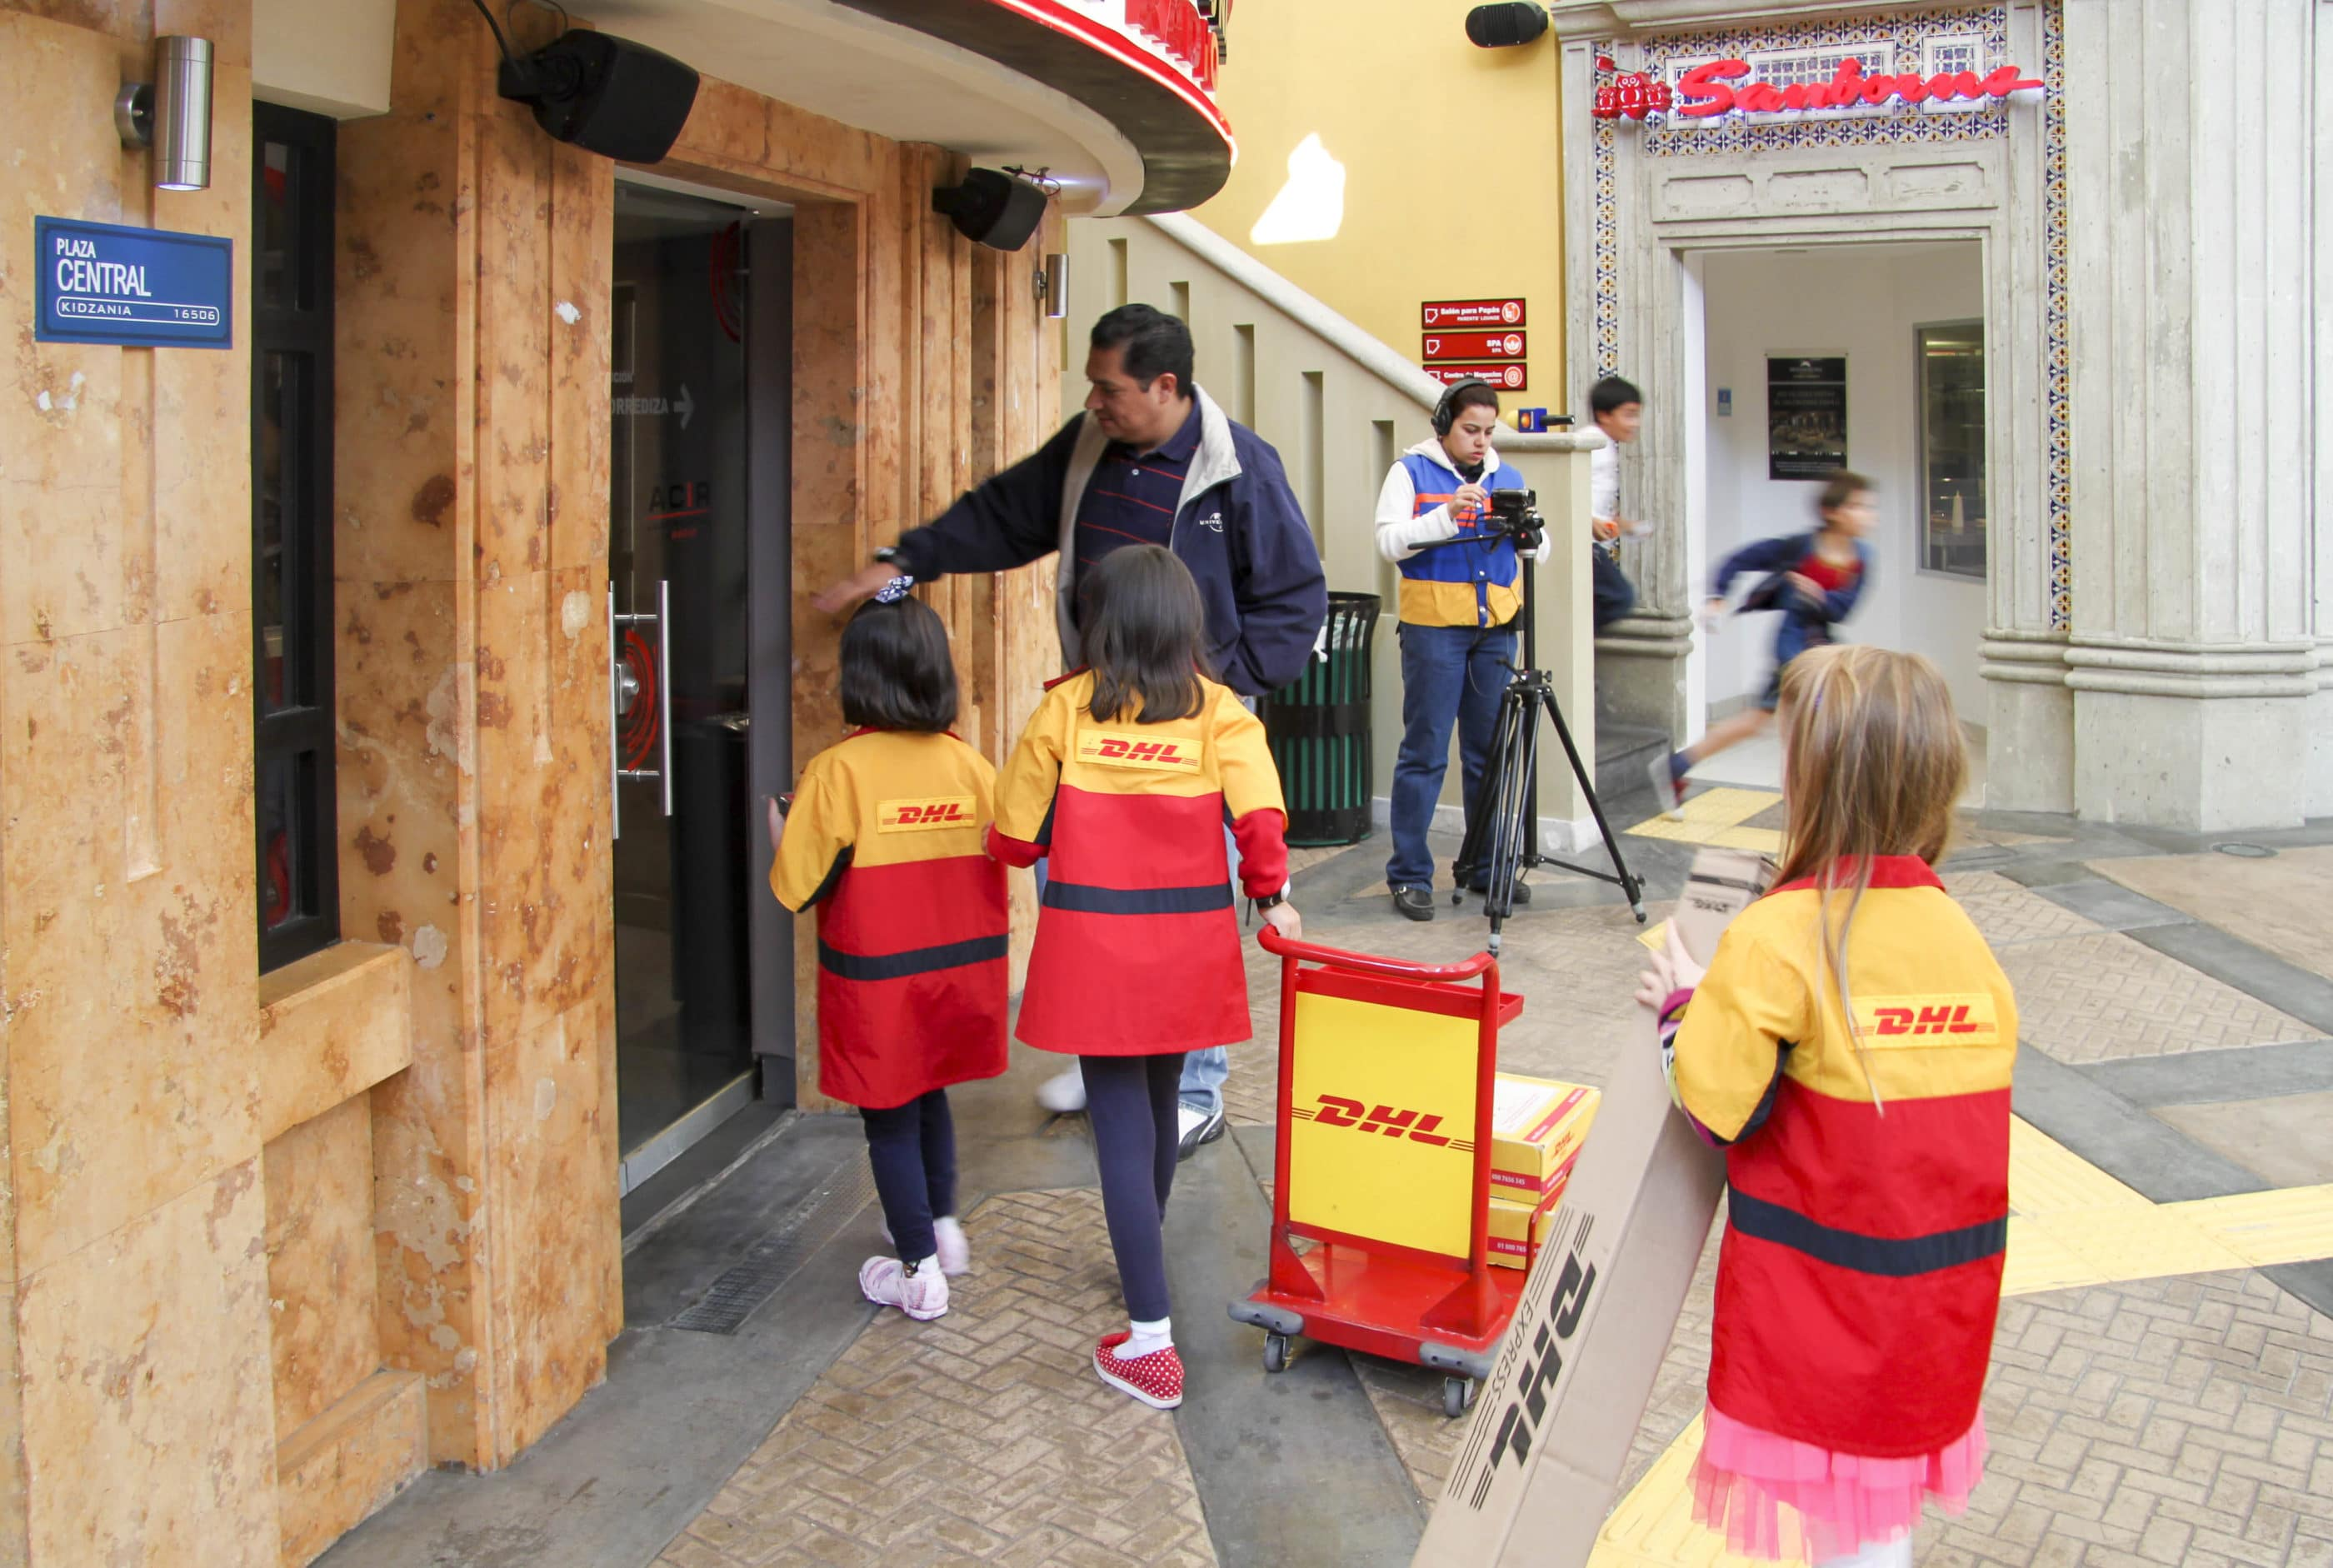 Kids delivering packages as DHL workers at Kid City, a theme park where they can role play adult careers.